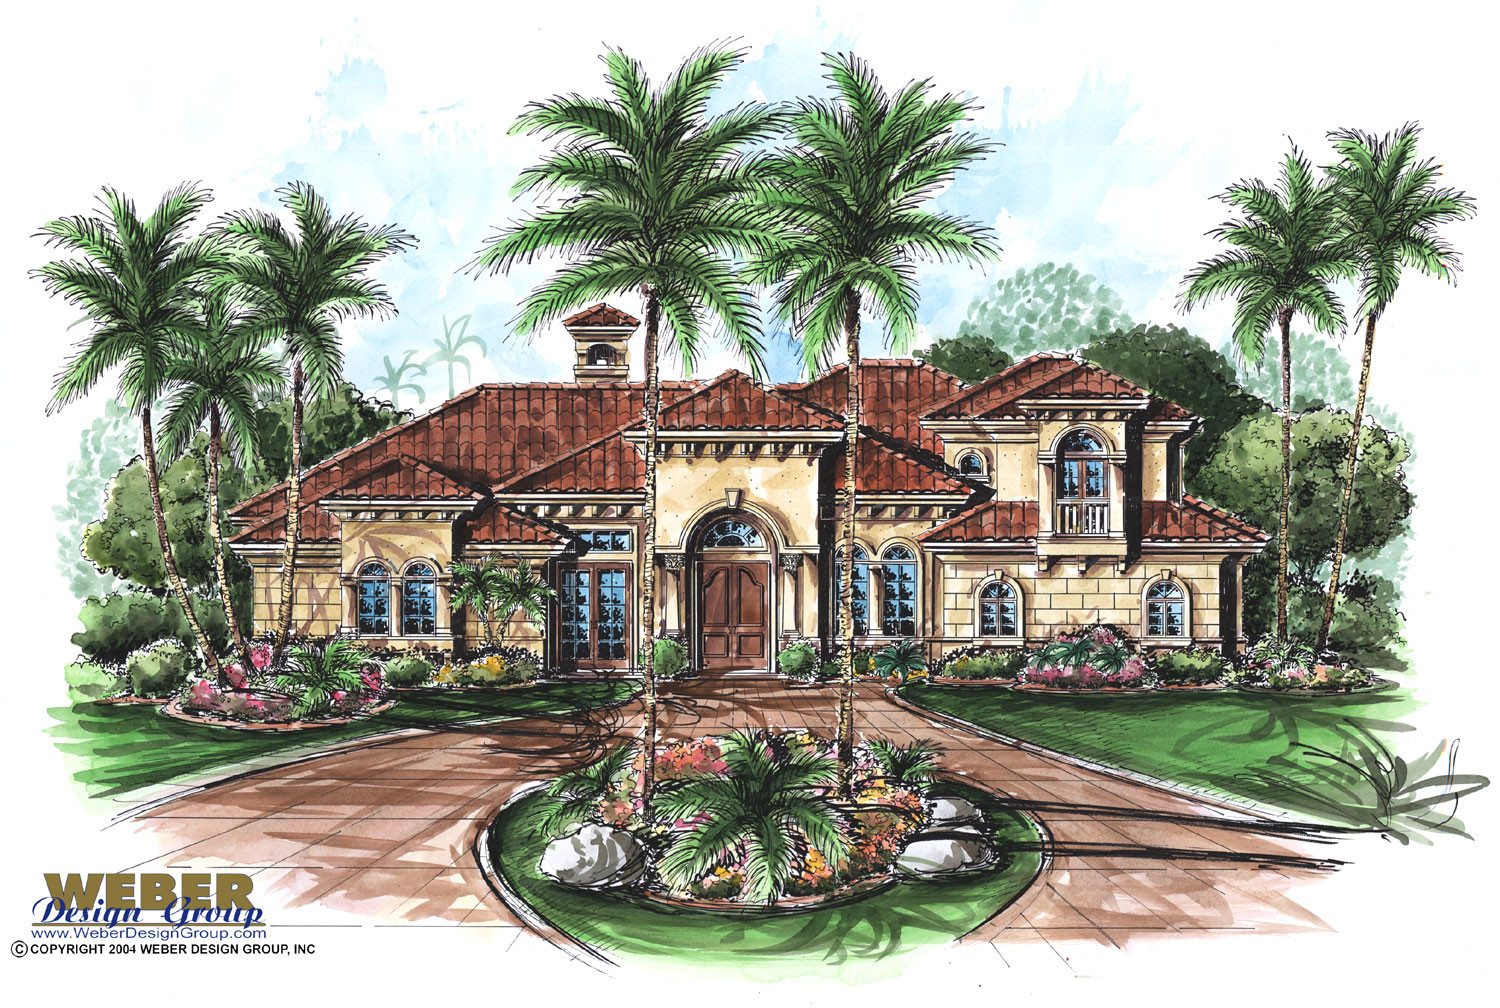 Mediterranean House Plan: 2 Story Tuscan Style Home Floor Plan on one story spanish home, traditional spanish house, contemporary spanish house, antique house, two tone stucco style house, duplex spanish house, ominous house, mediterranean spanish house,